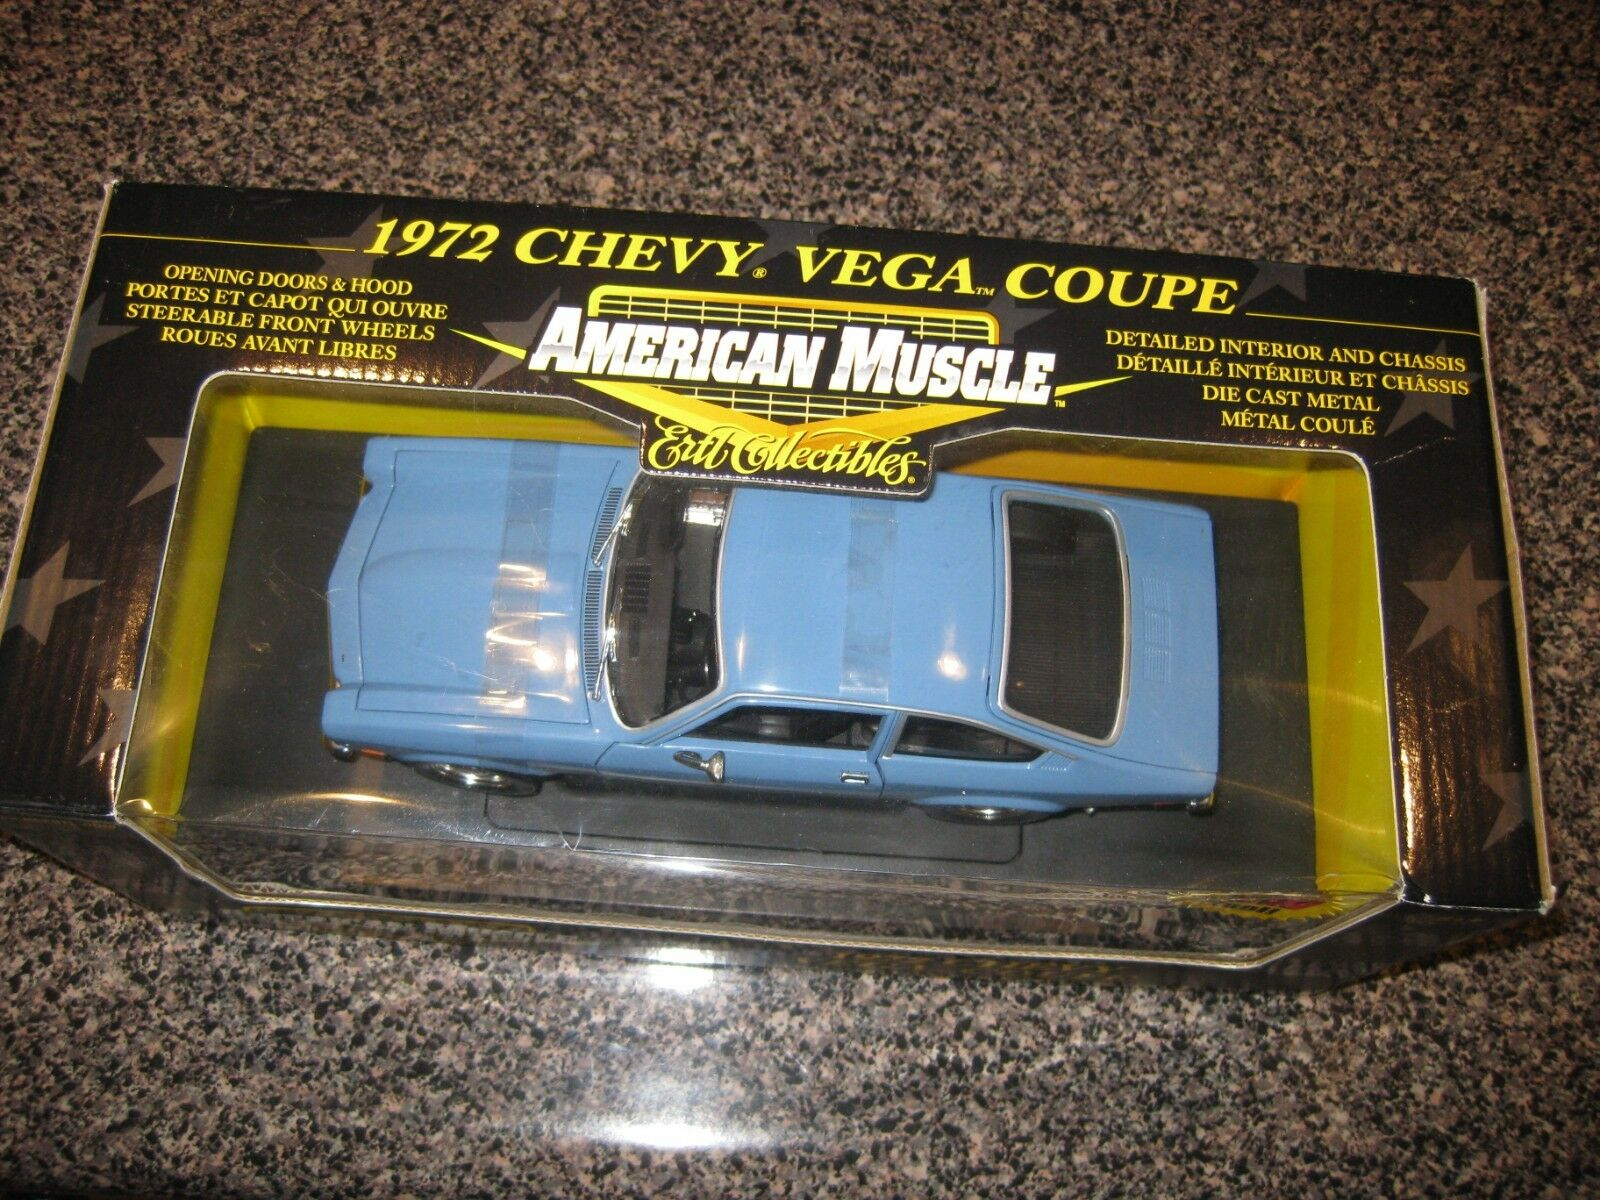 ERTL COLLECTIBLE AMERICAN MUSCLE 1972 CHEVROLET VEGA COUPE COUPE COUPE blueE 1 18 SCALE f659bf